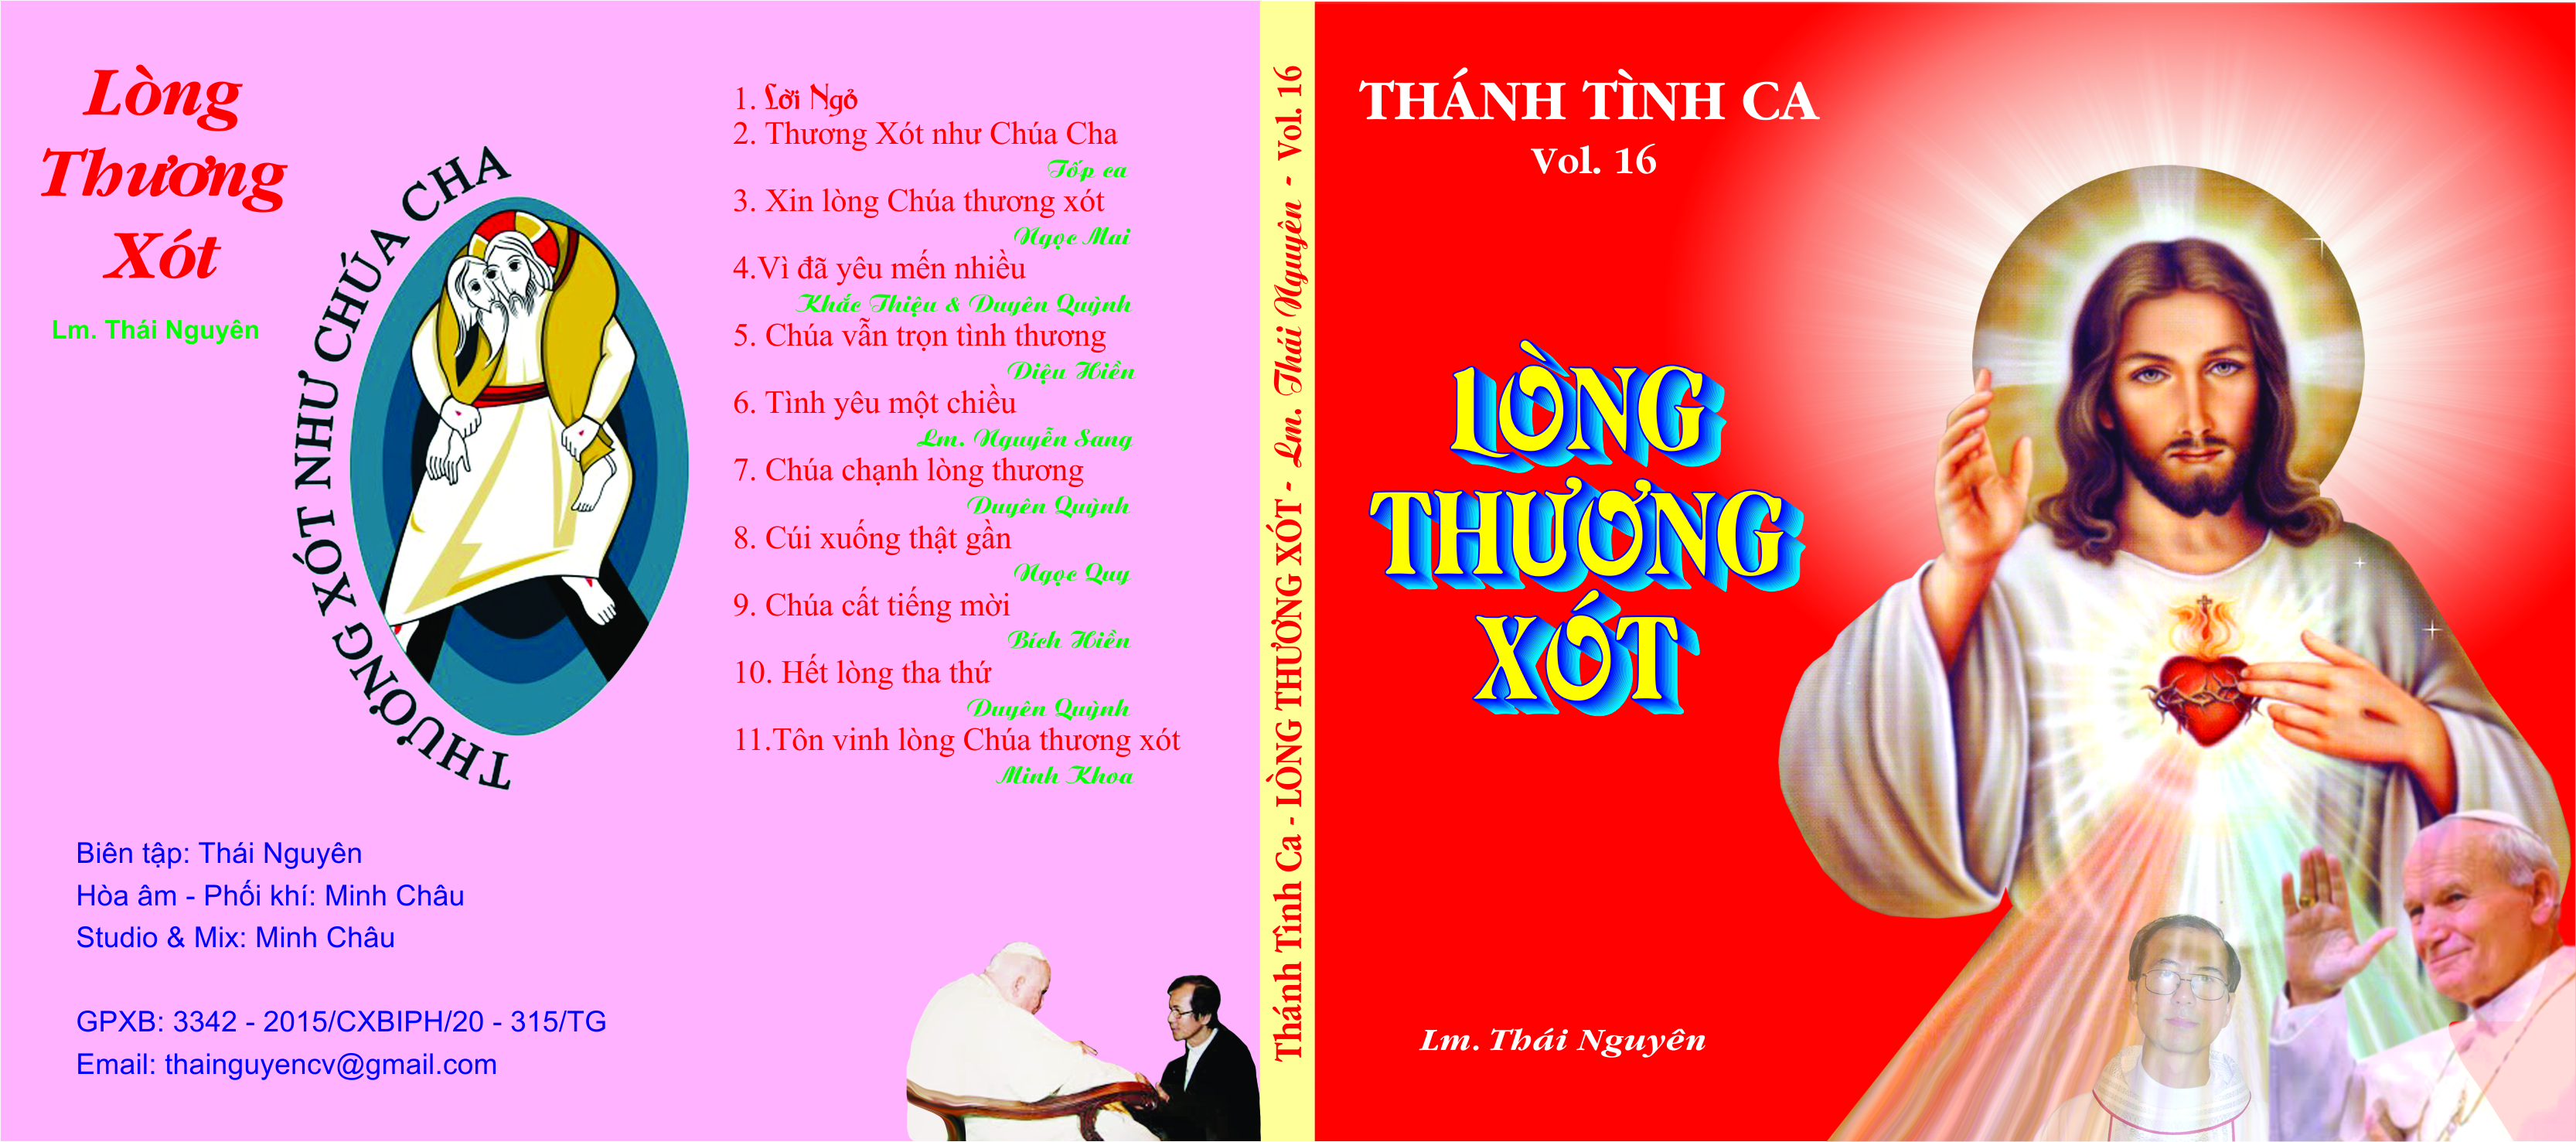 CD Long Thuong Xot